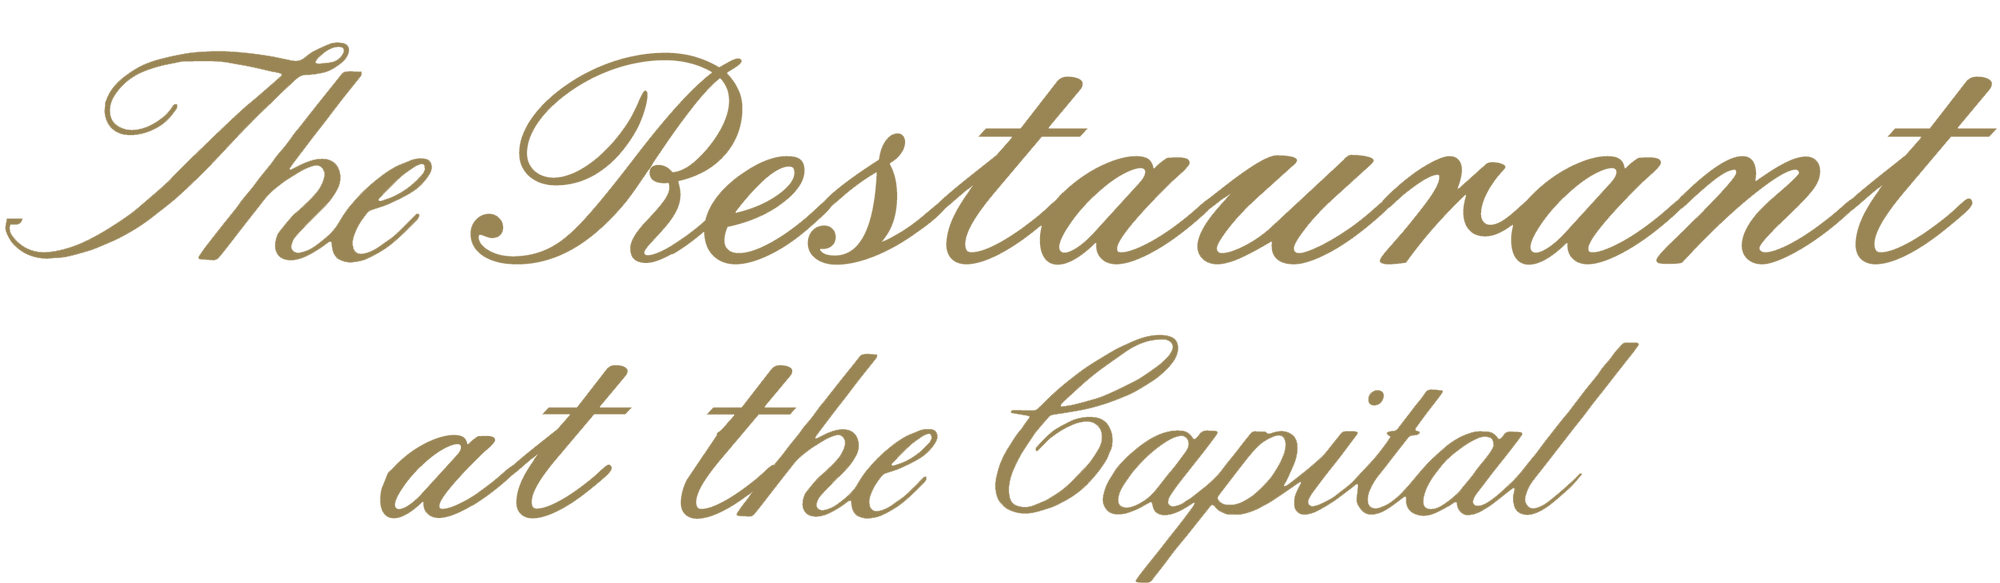 The Restaurant at the Capital Logo